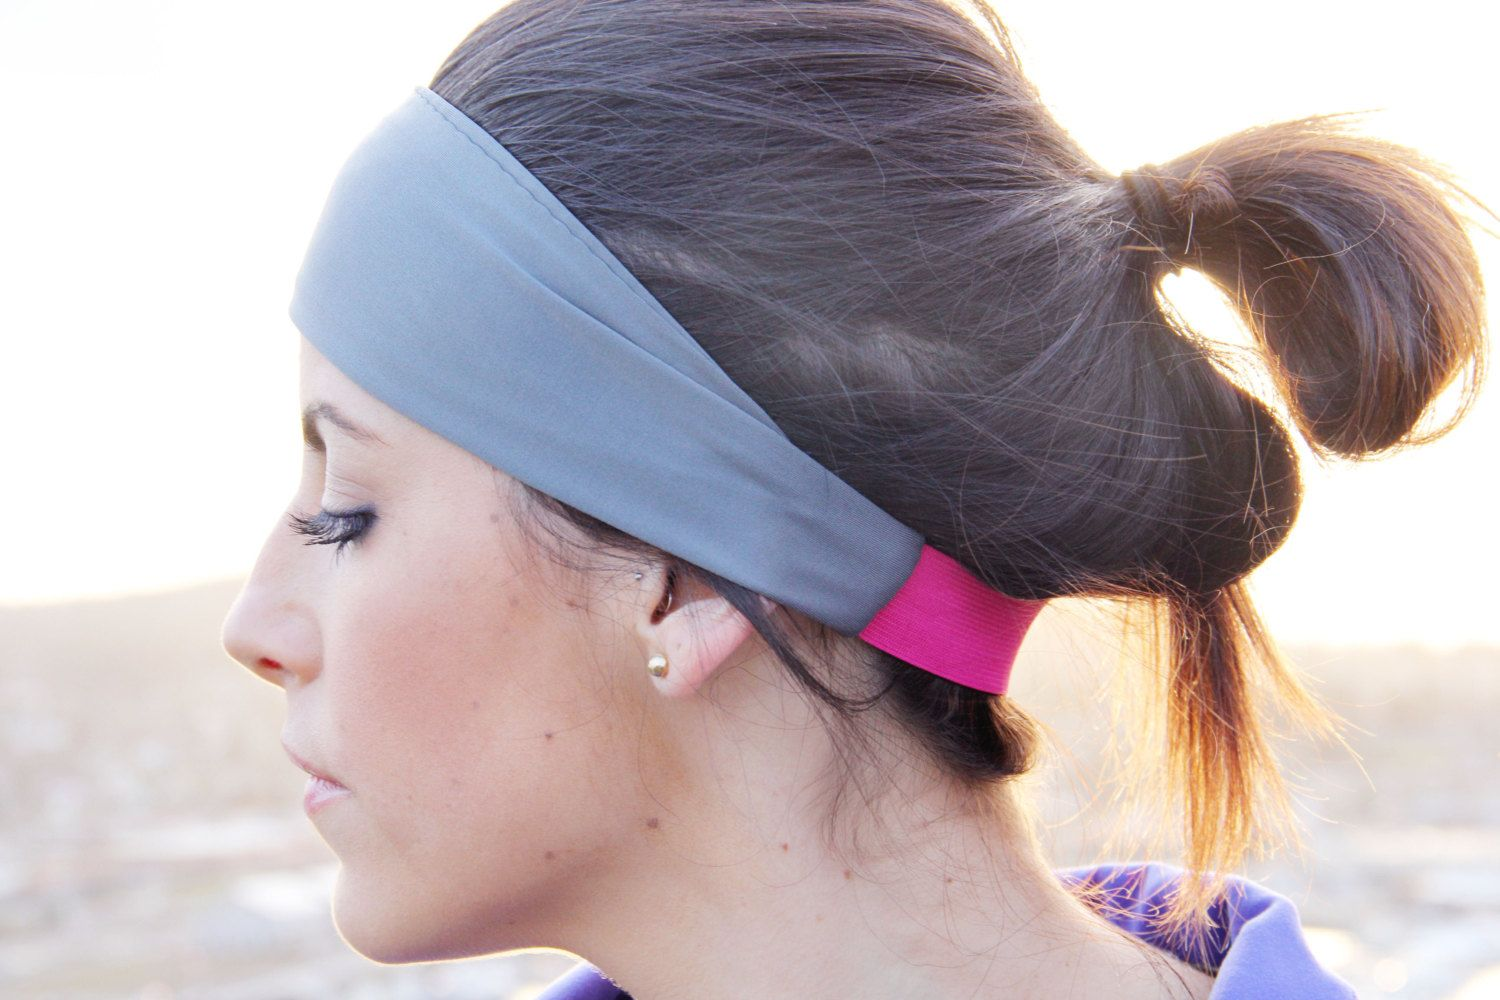 fithappy classic exercise headband in matte gray, perfect width